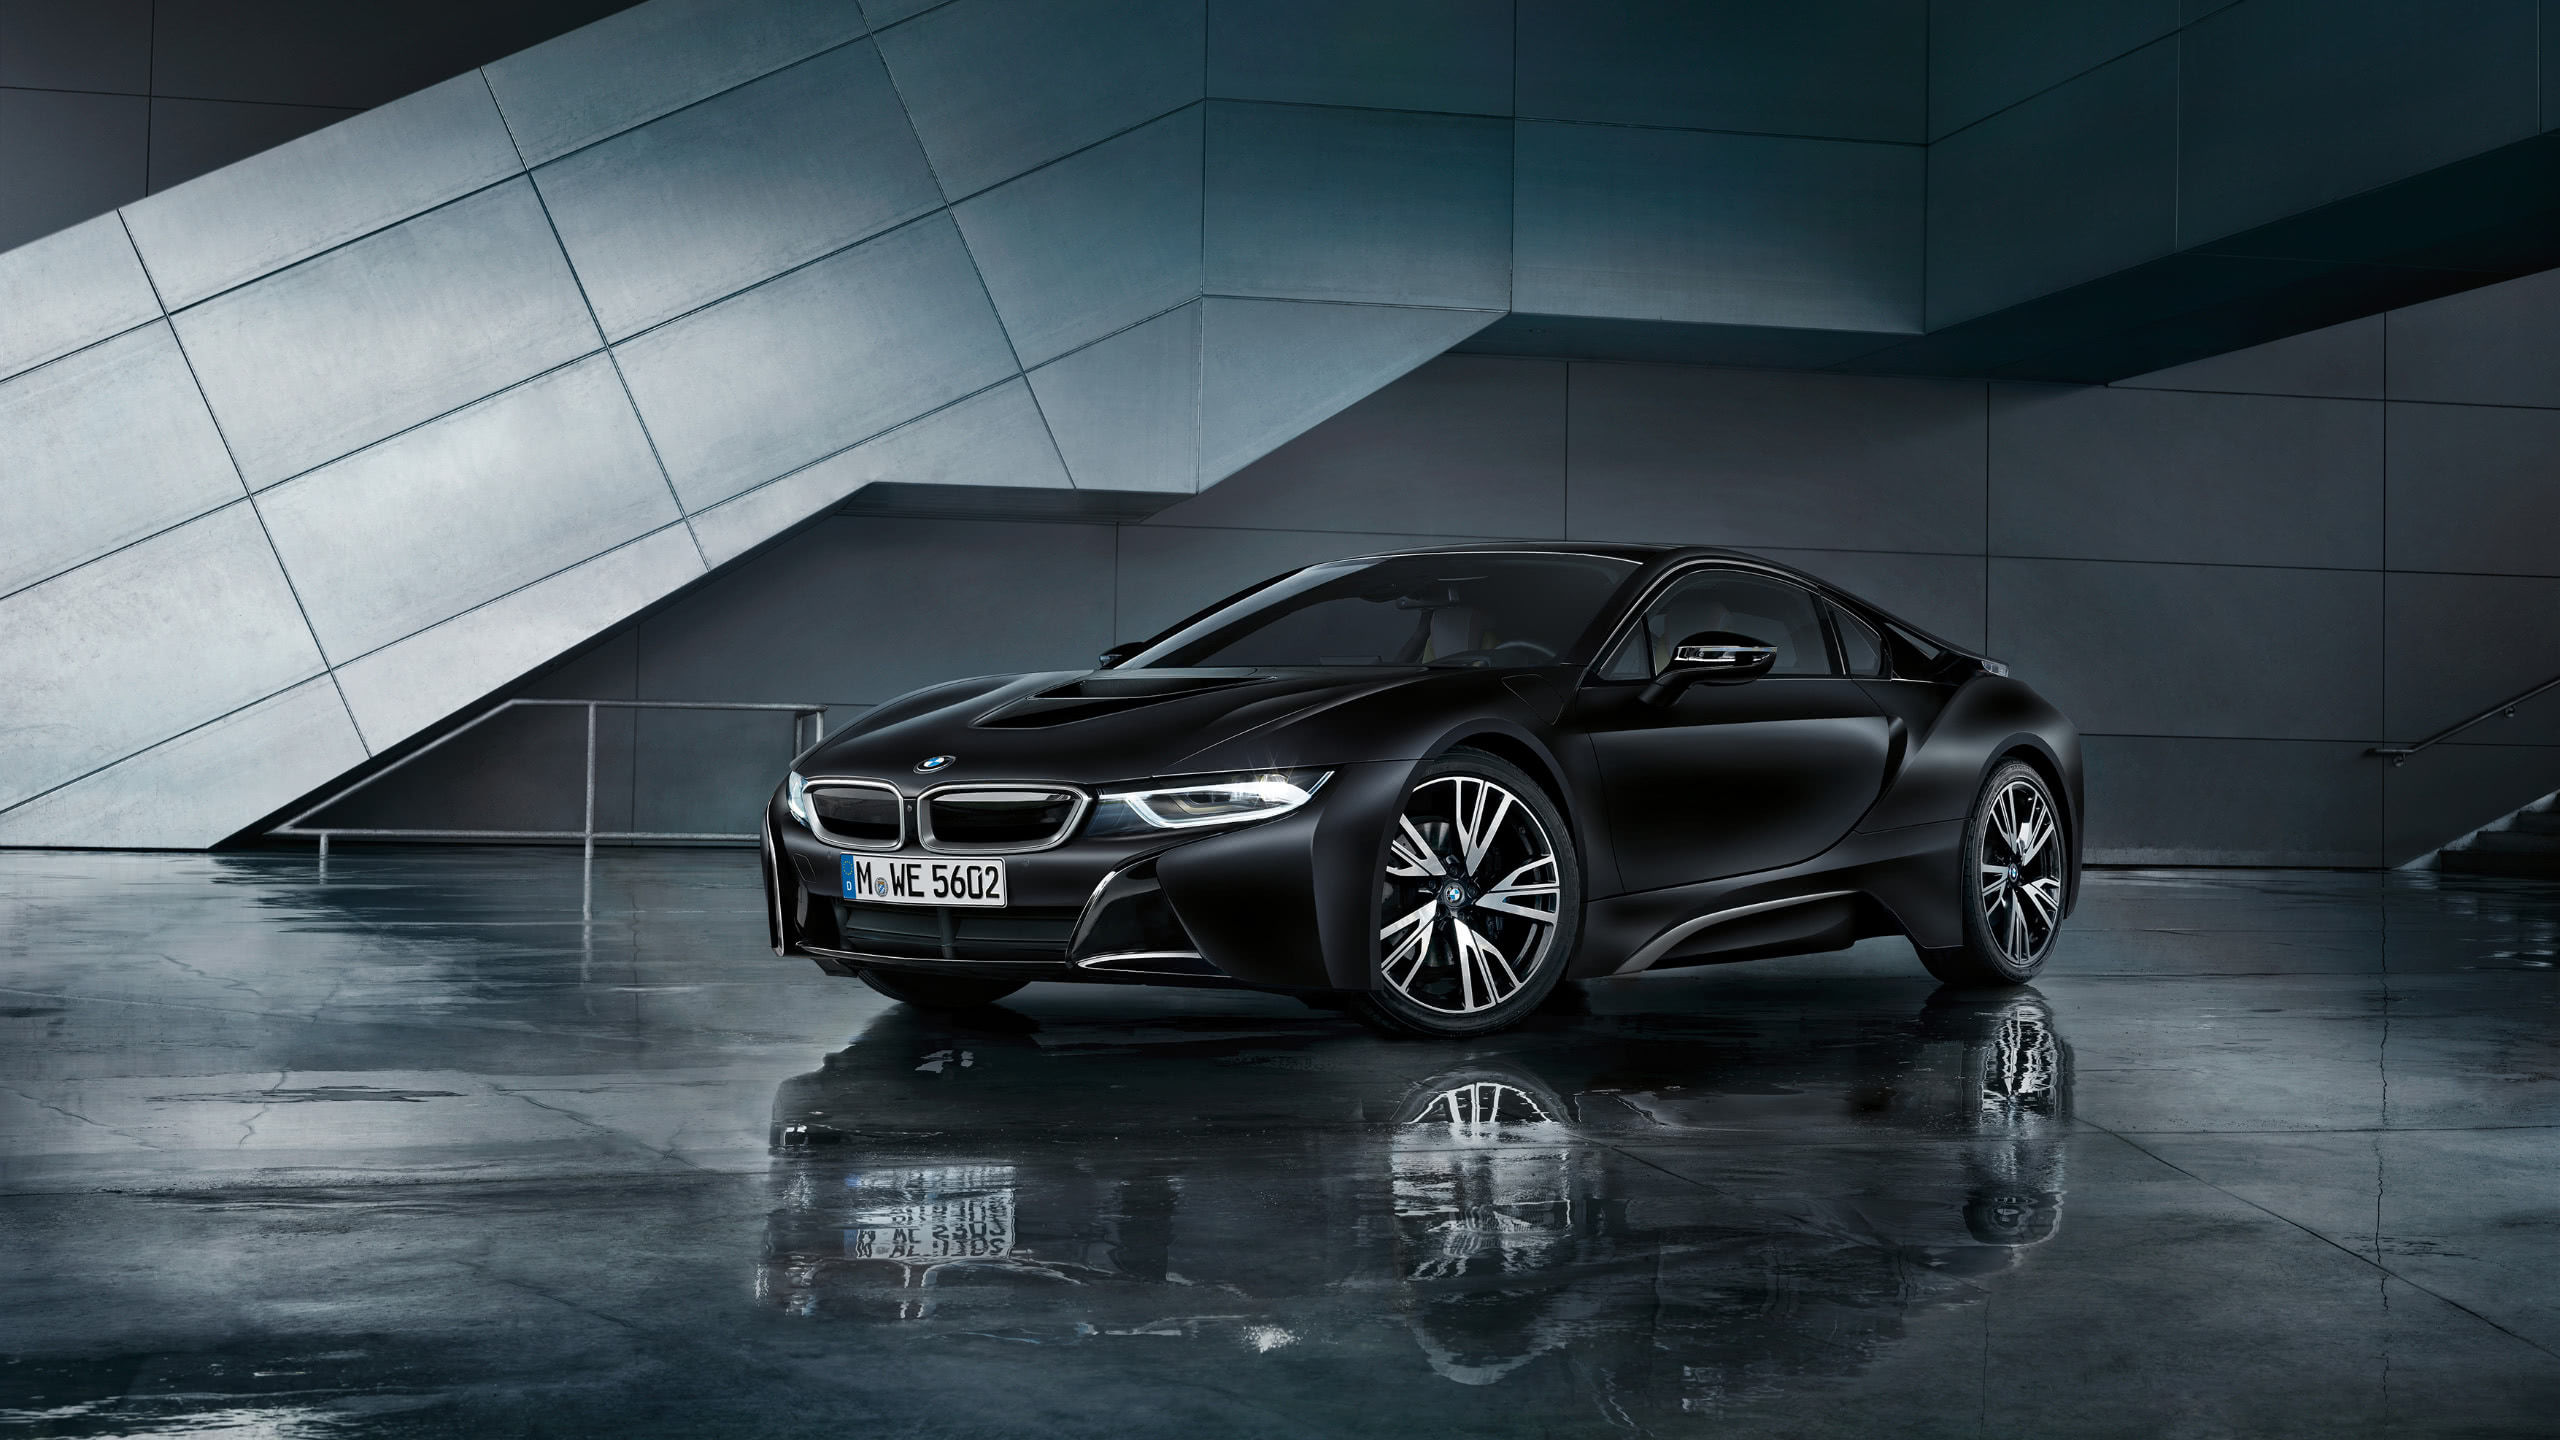 bmw i8 black wqhd 1440p wallpaper